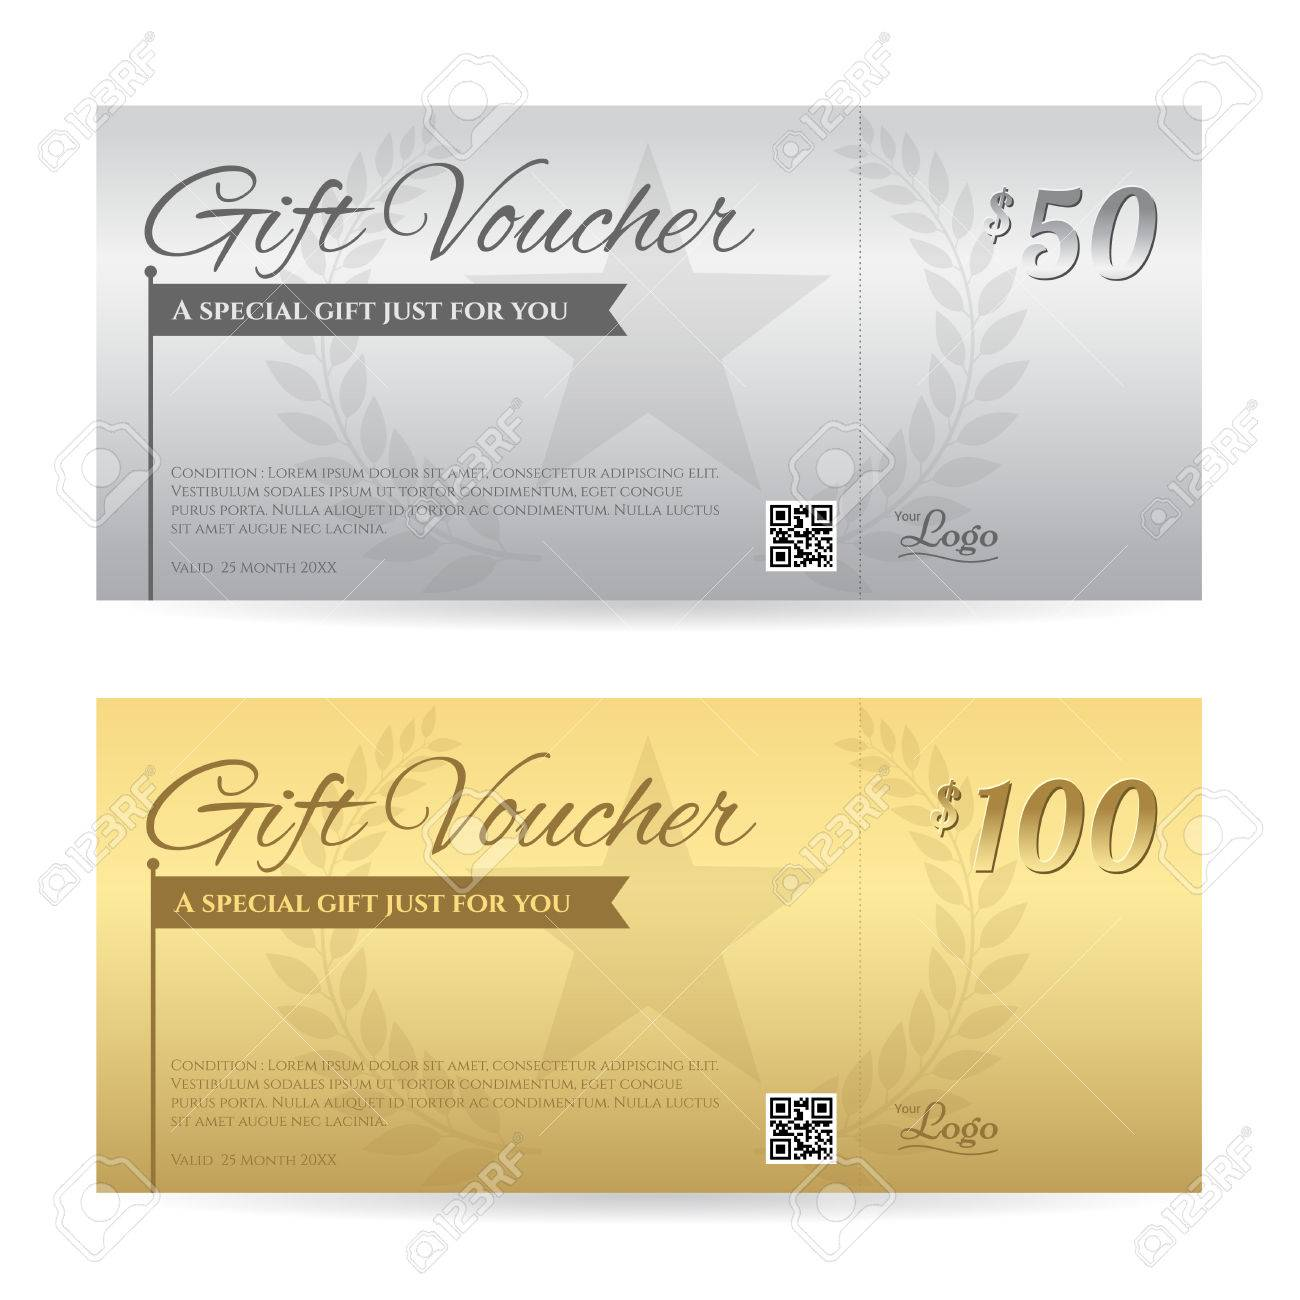 Elegant Gift Voucher Or Gift Card Certificate Template In Gold ...